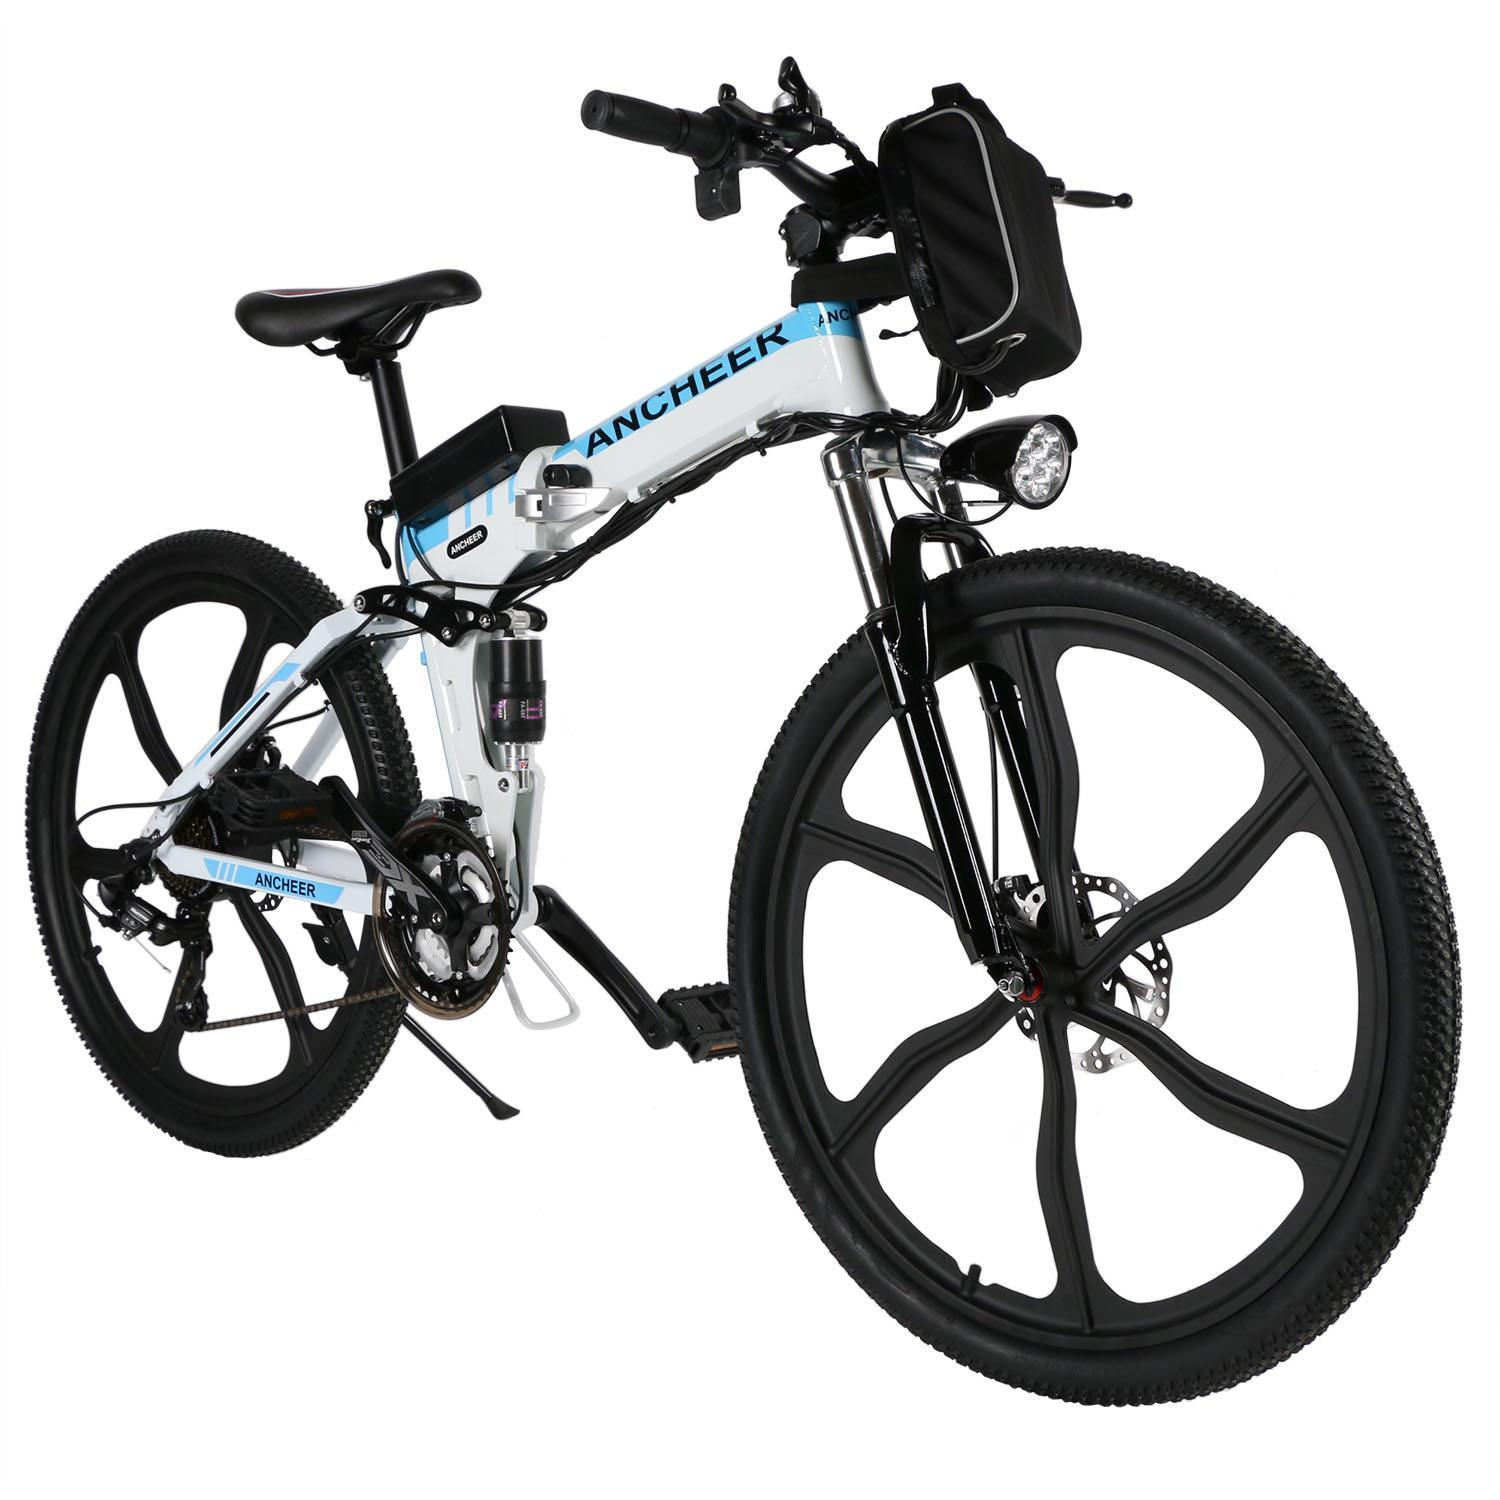 Folding Collapsible Electric Bike for Men Powerful Mountain Bicycle for Adults of High-strength Carbon Steel Comfort Shock Absorption System